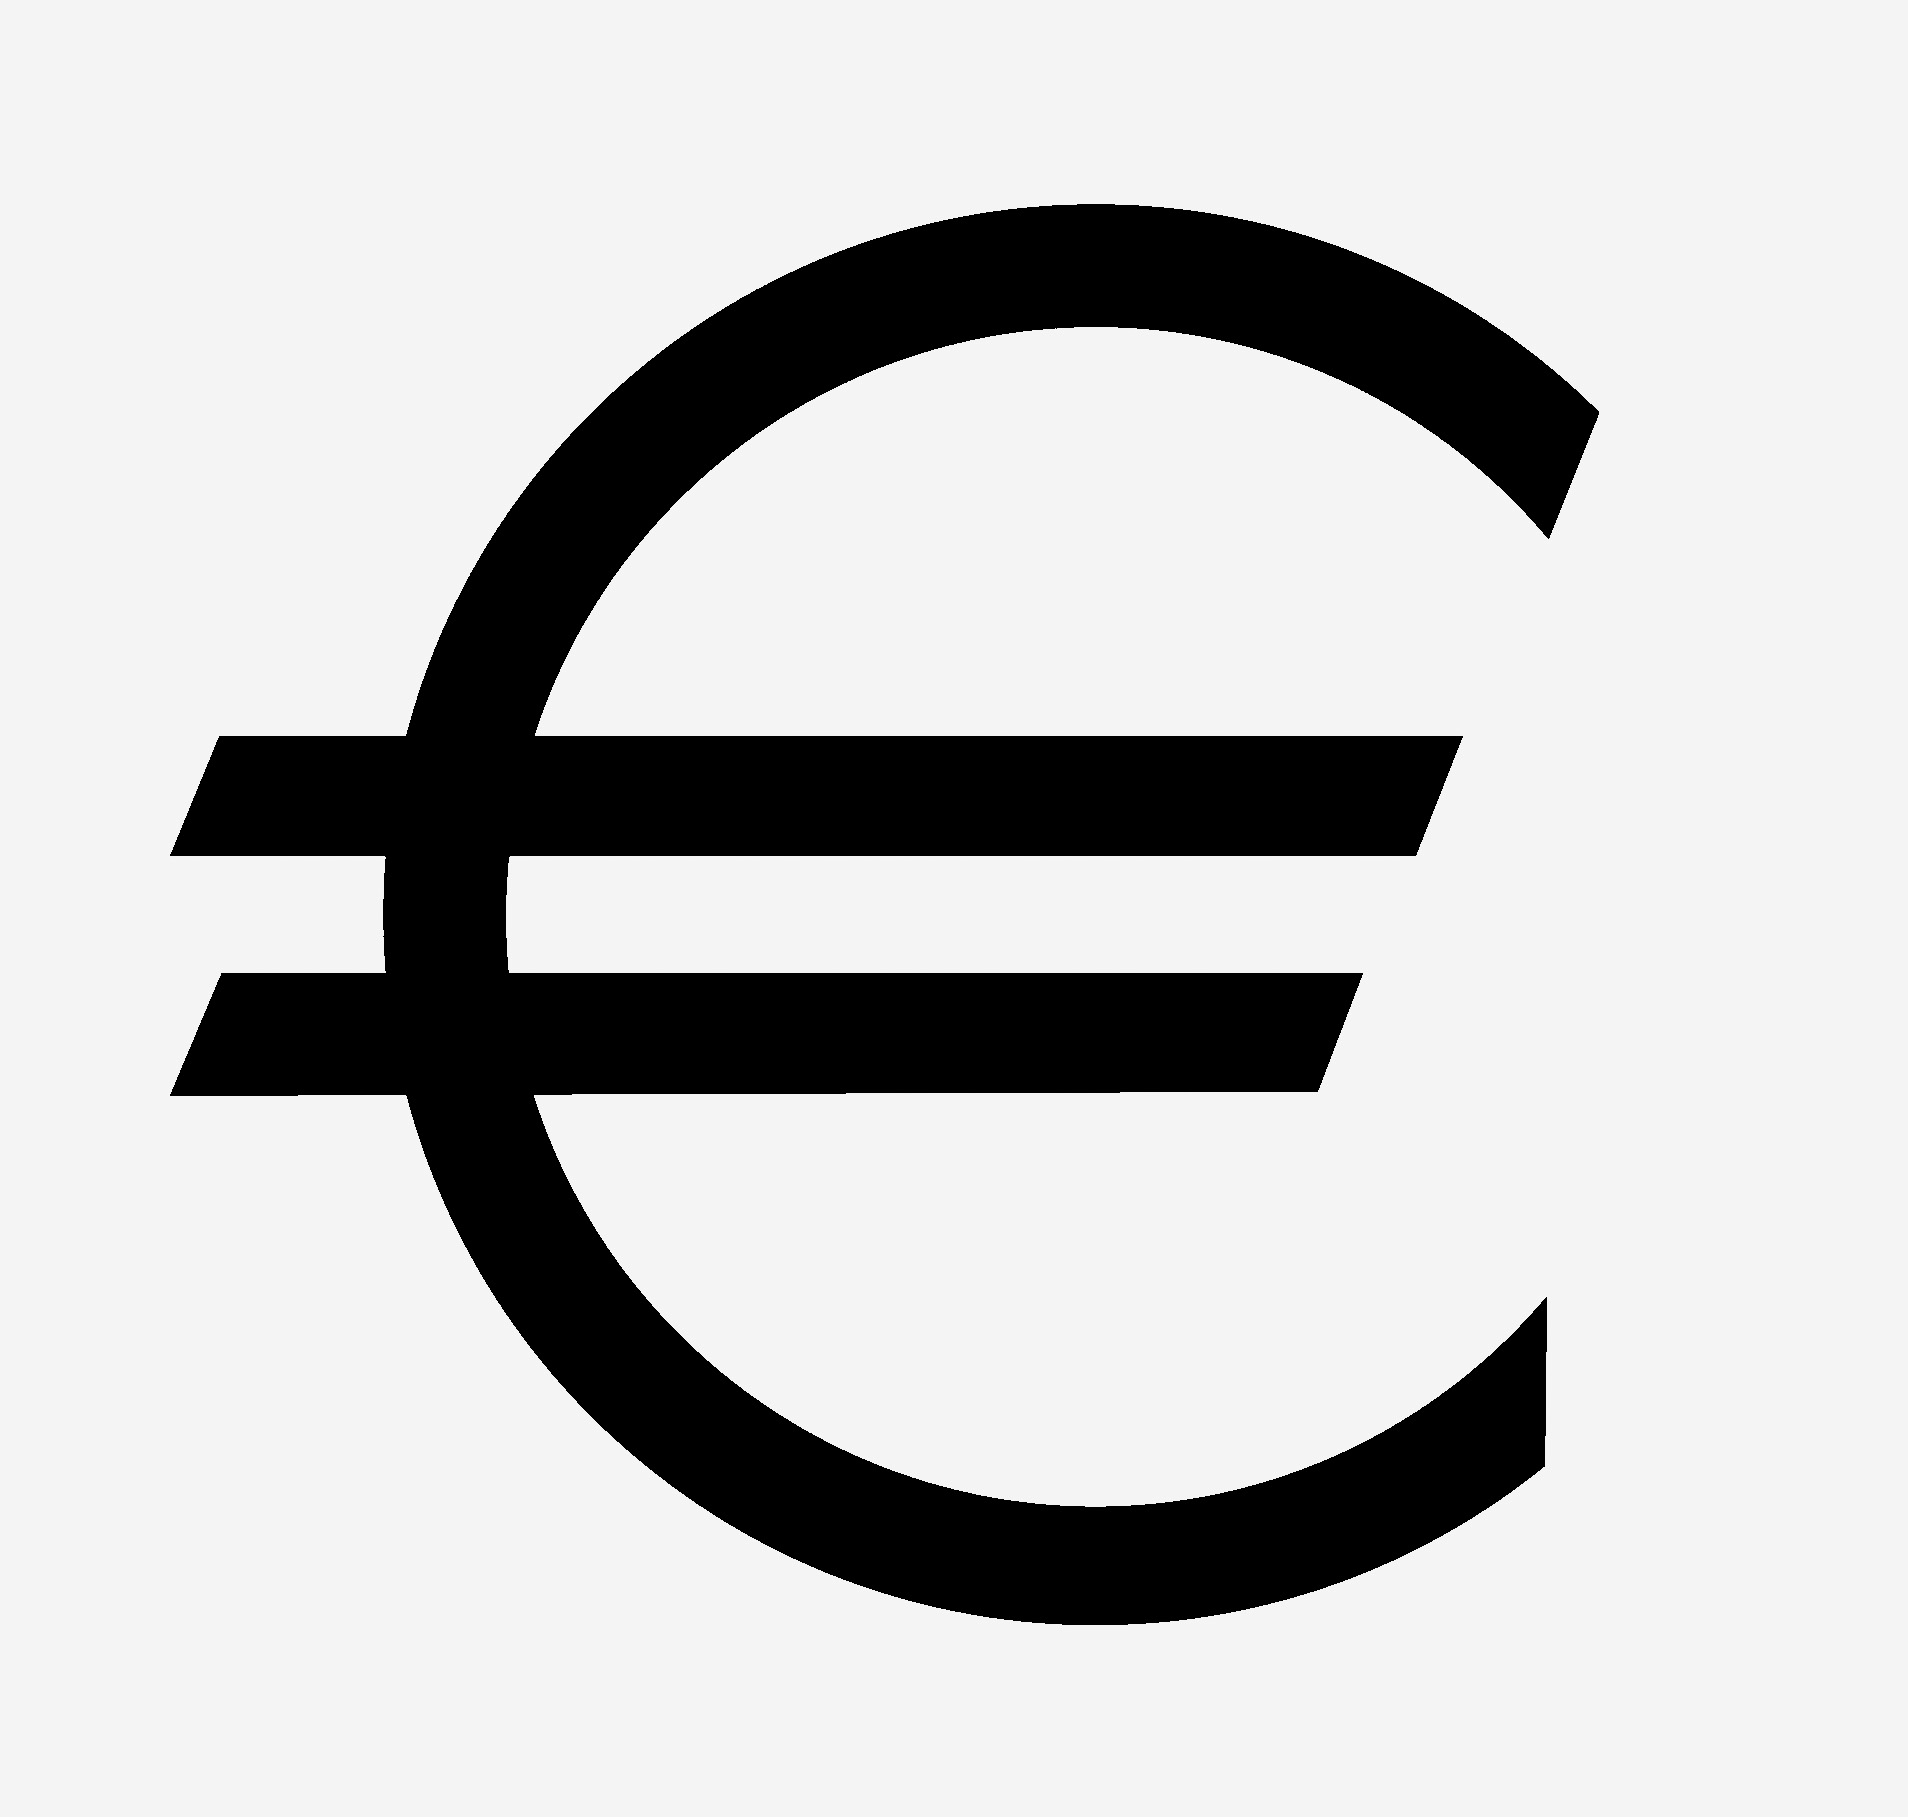 Png Euro Icon image #10363